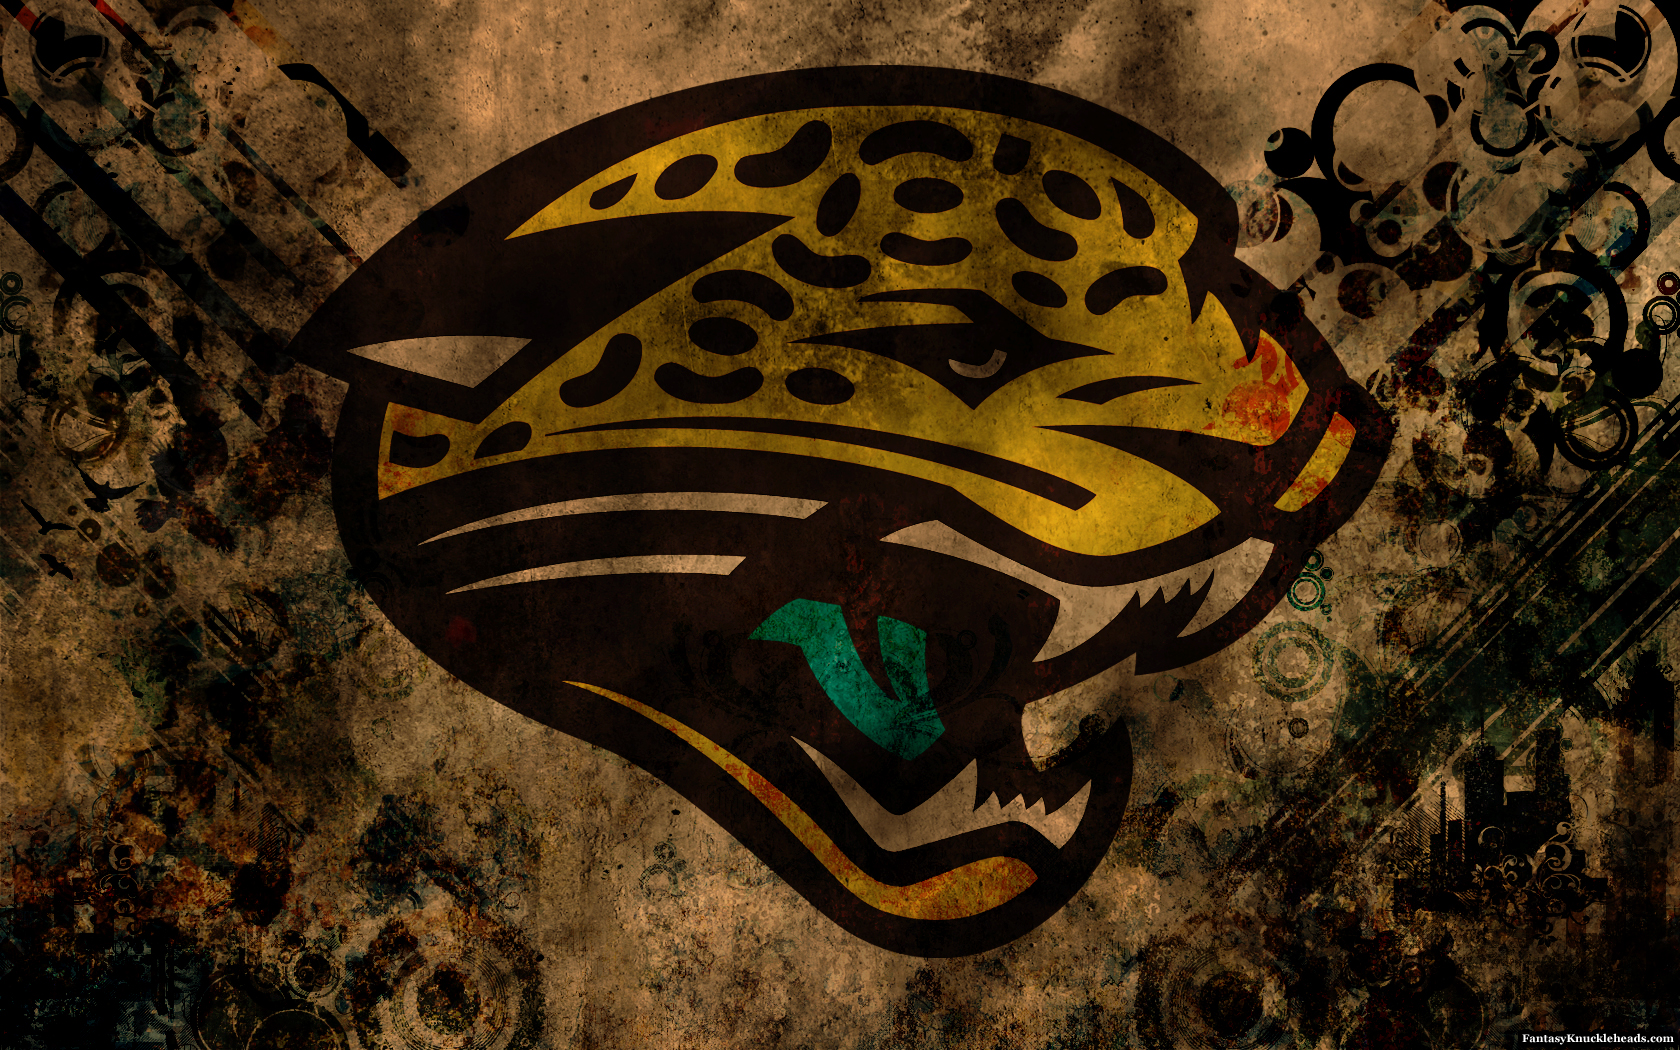 jacksonville jaguars new logo wallpapers - photo #20